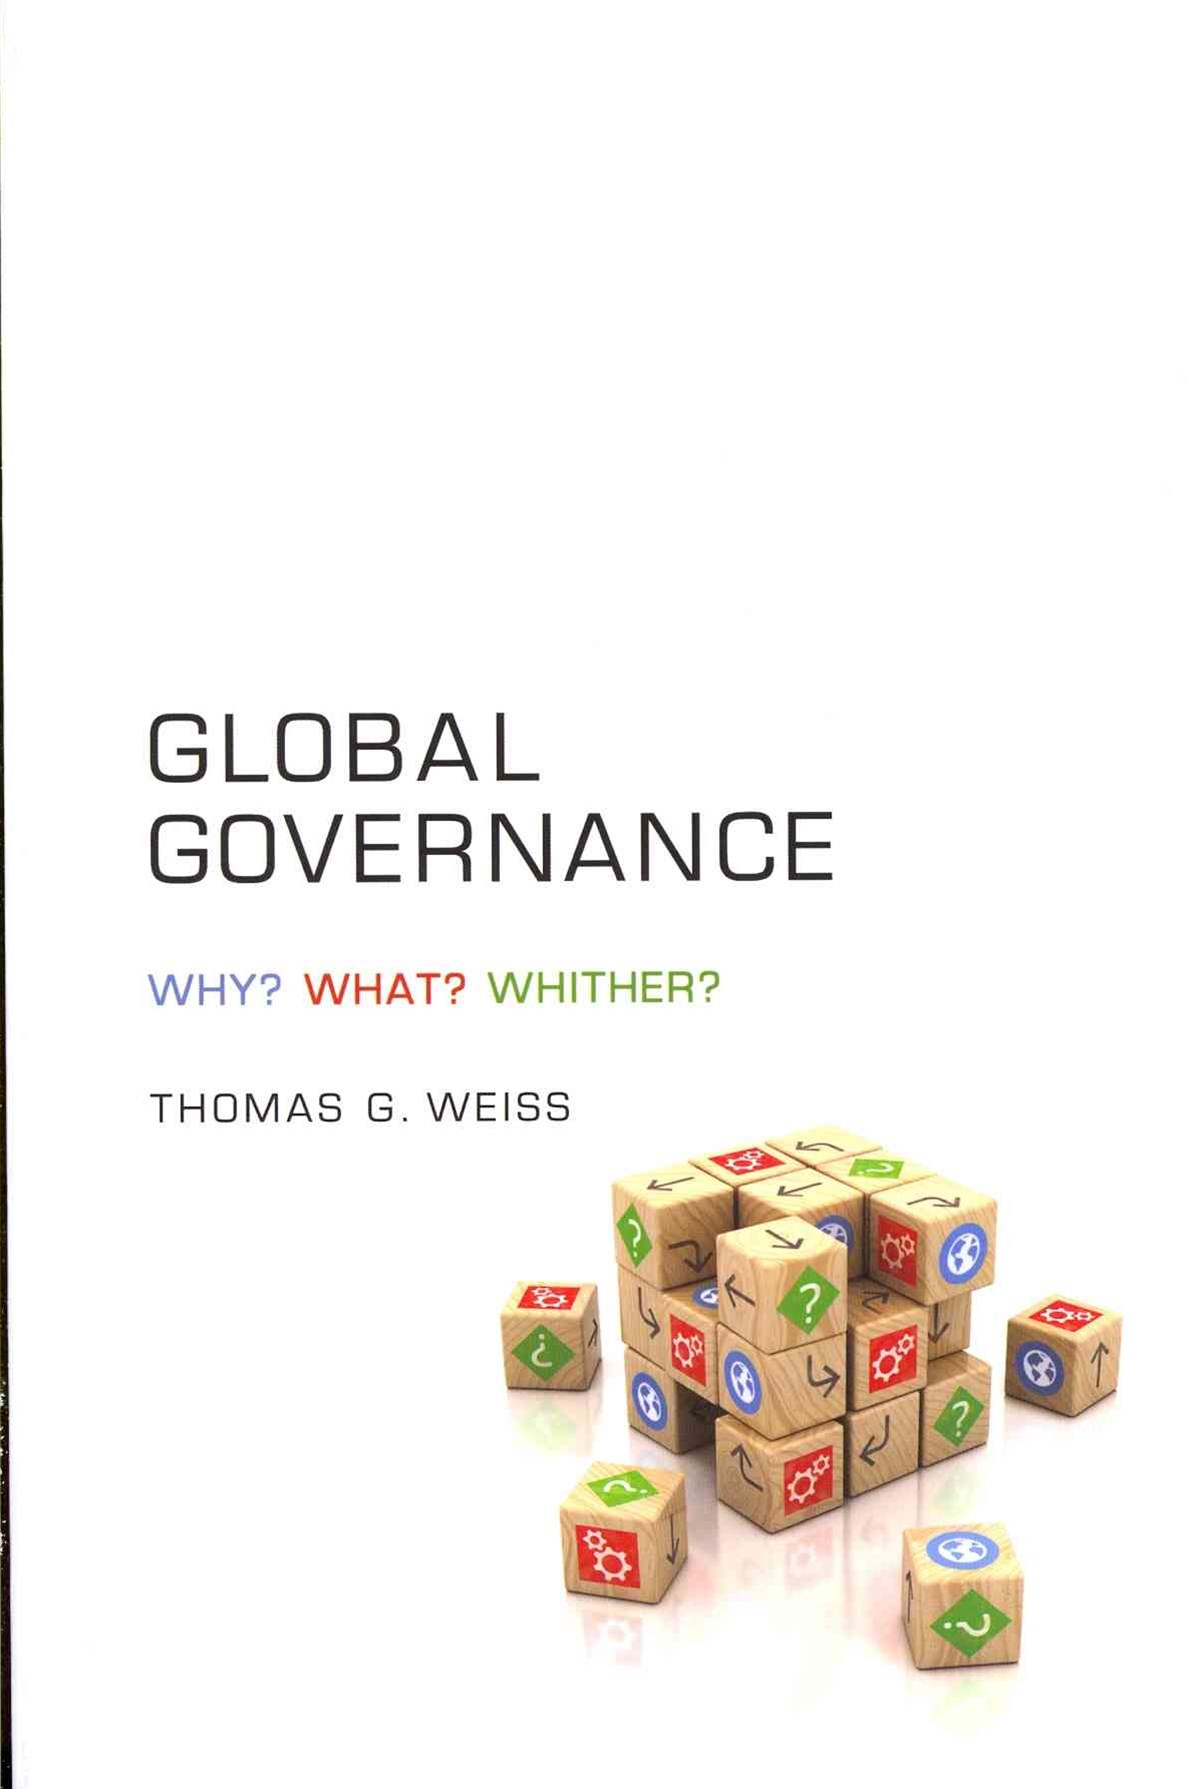 Global Governance - Why? What? Whither?